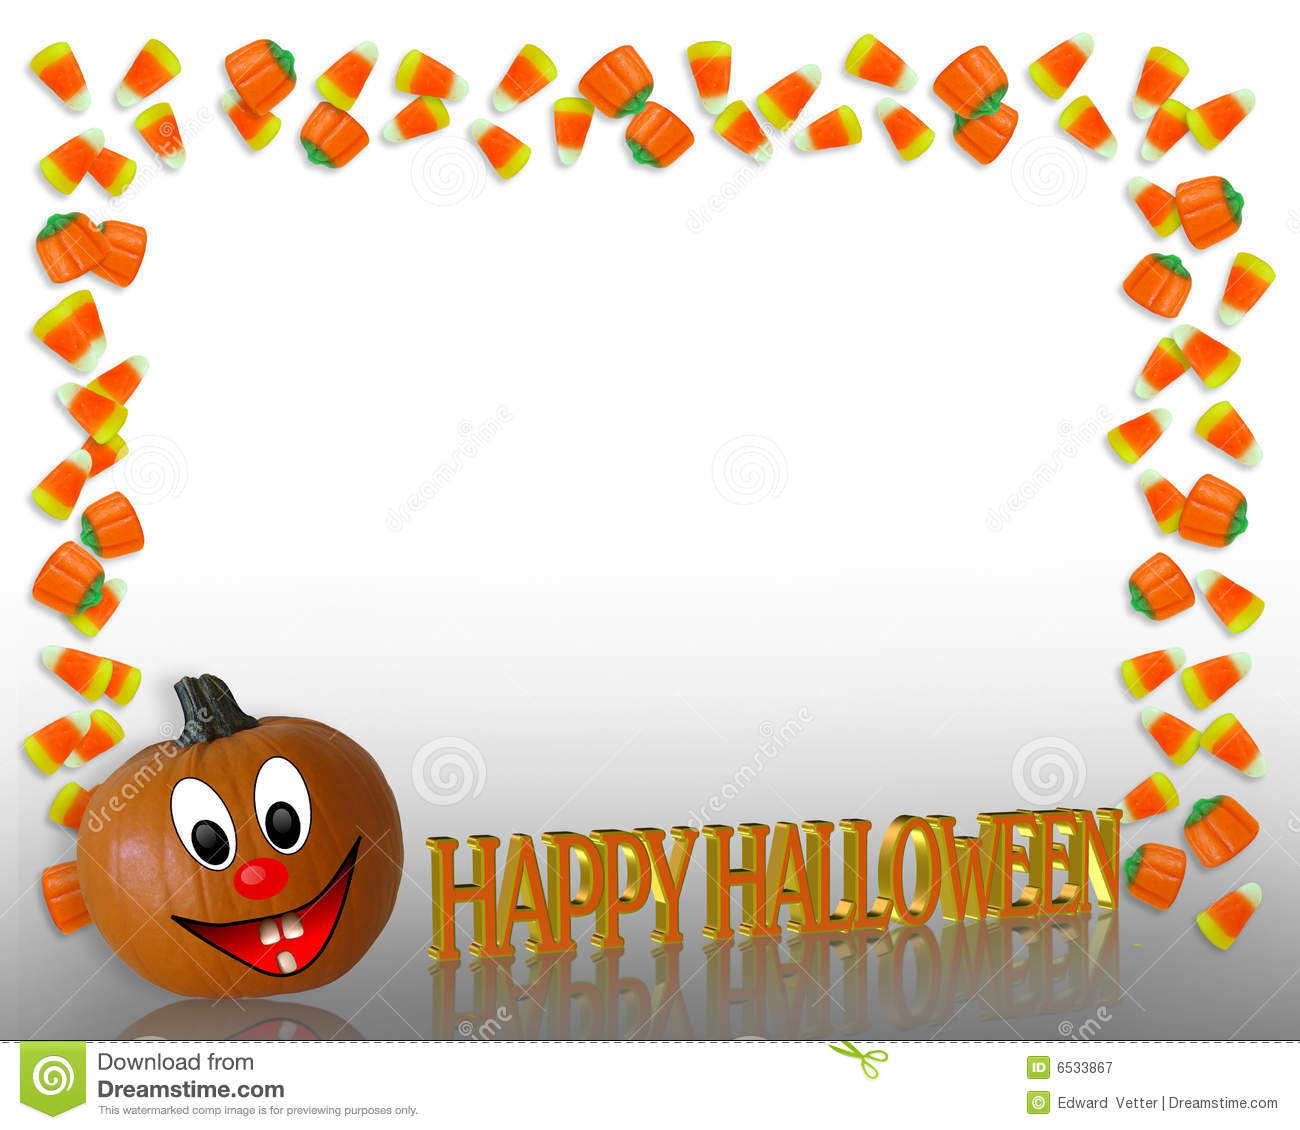 Halloween Border Candy Corn Stock Illustration - Illustration of ...